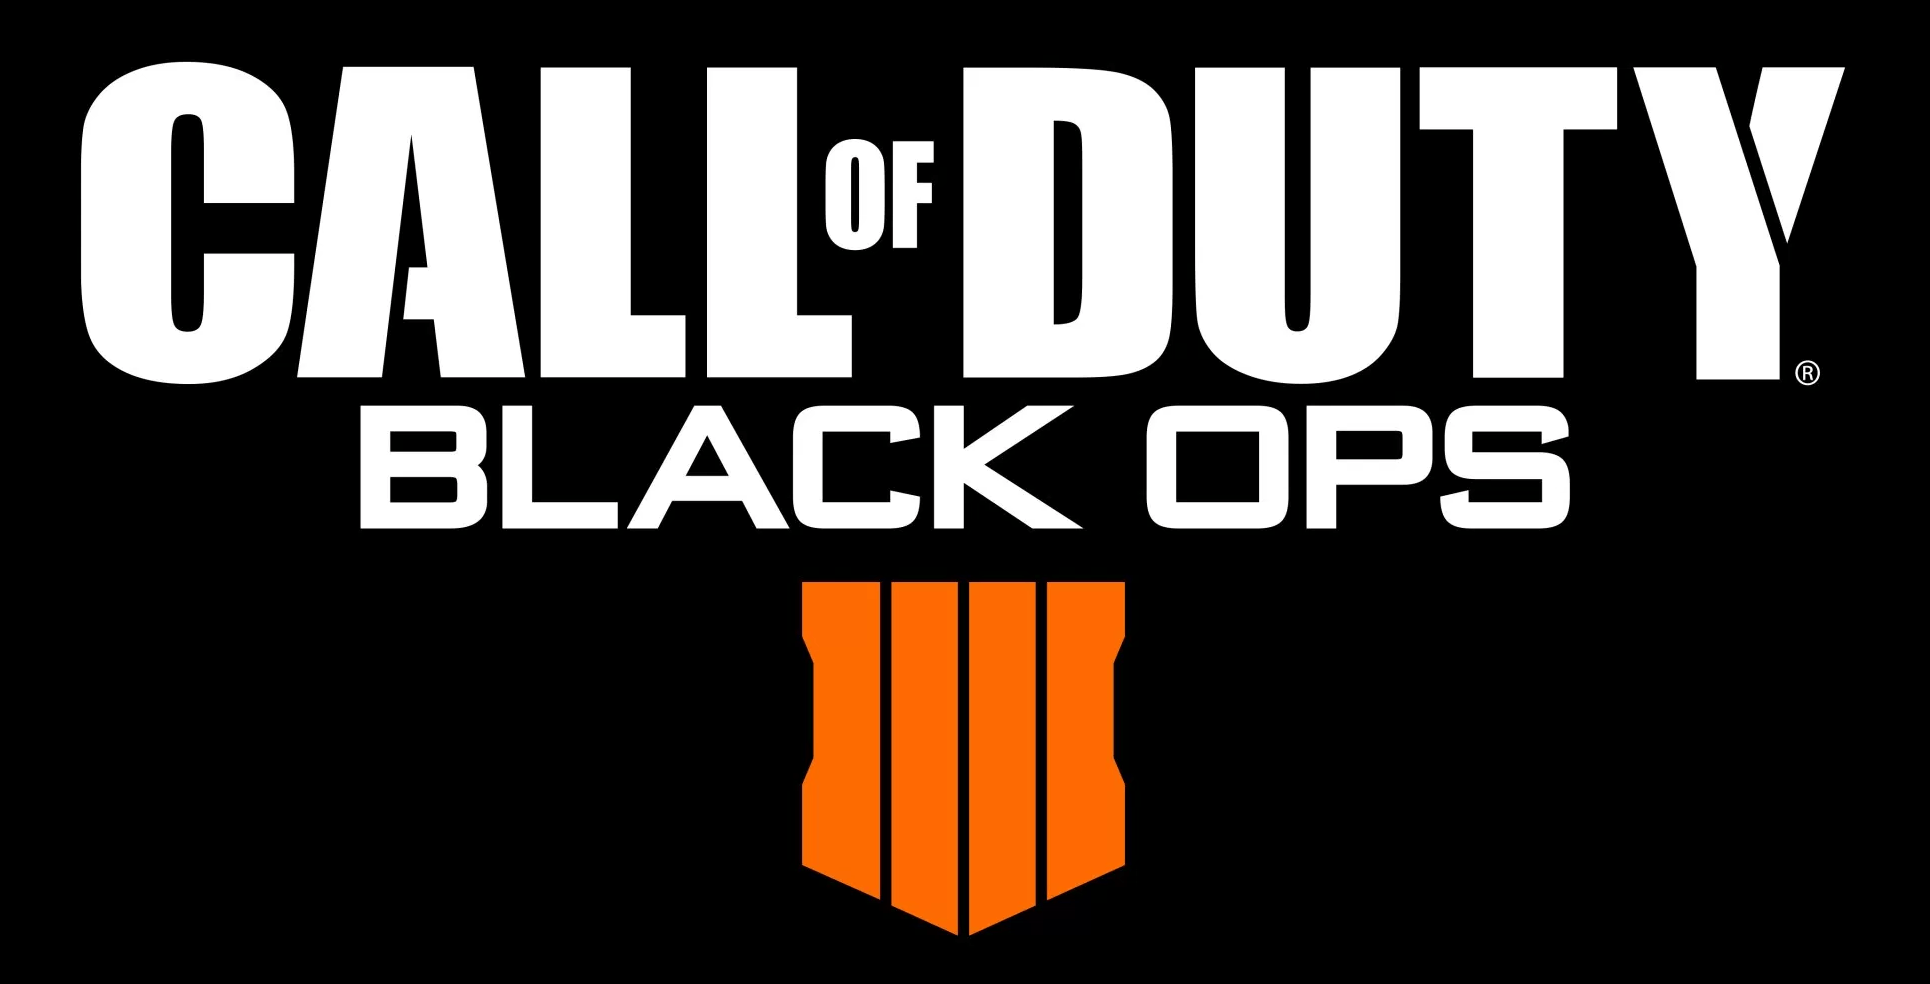 Bo4 Logo (Call Of Duty Black Ops 4) png